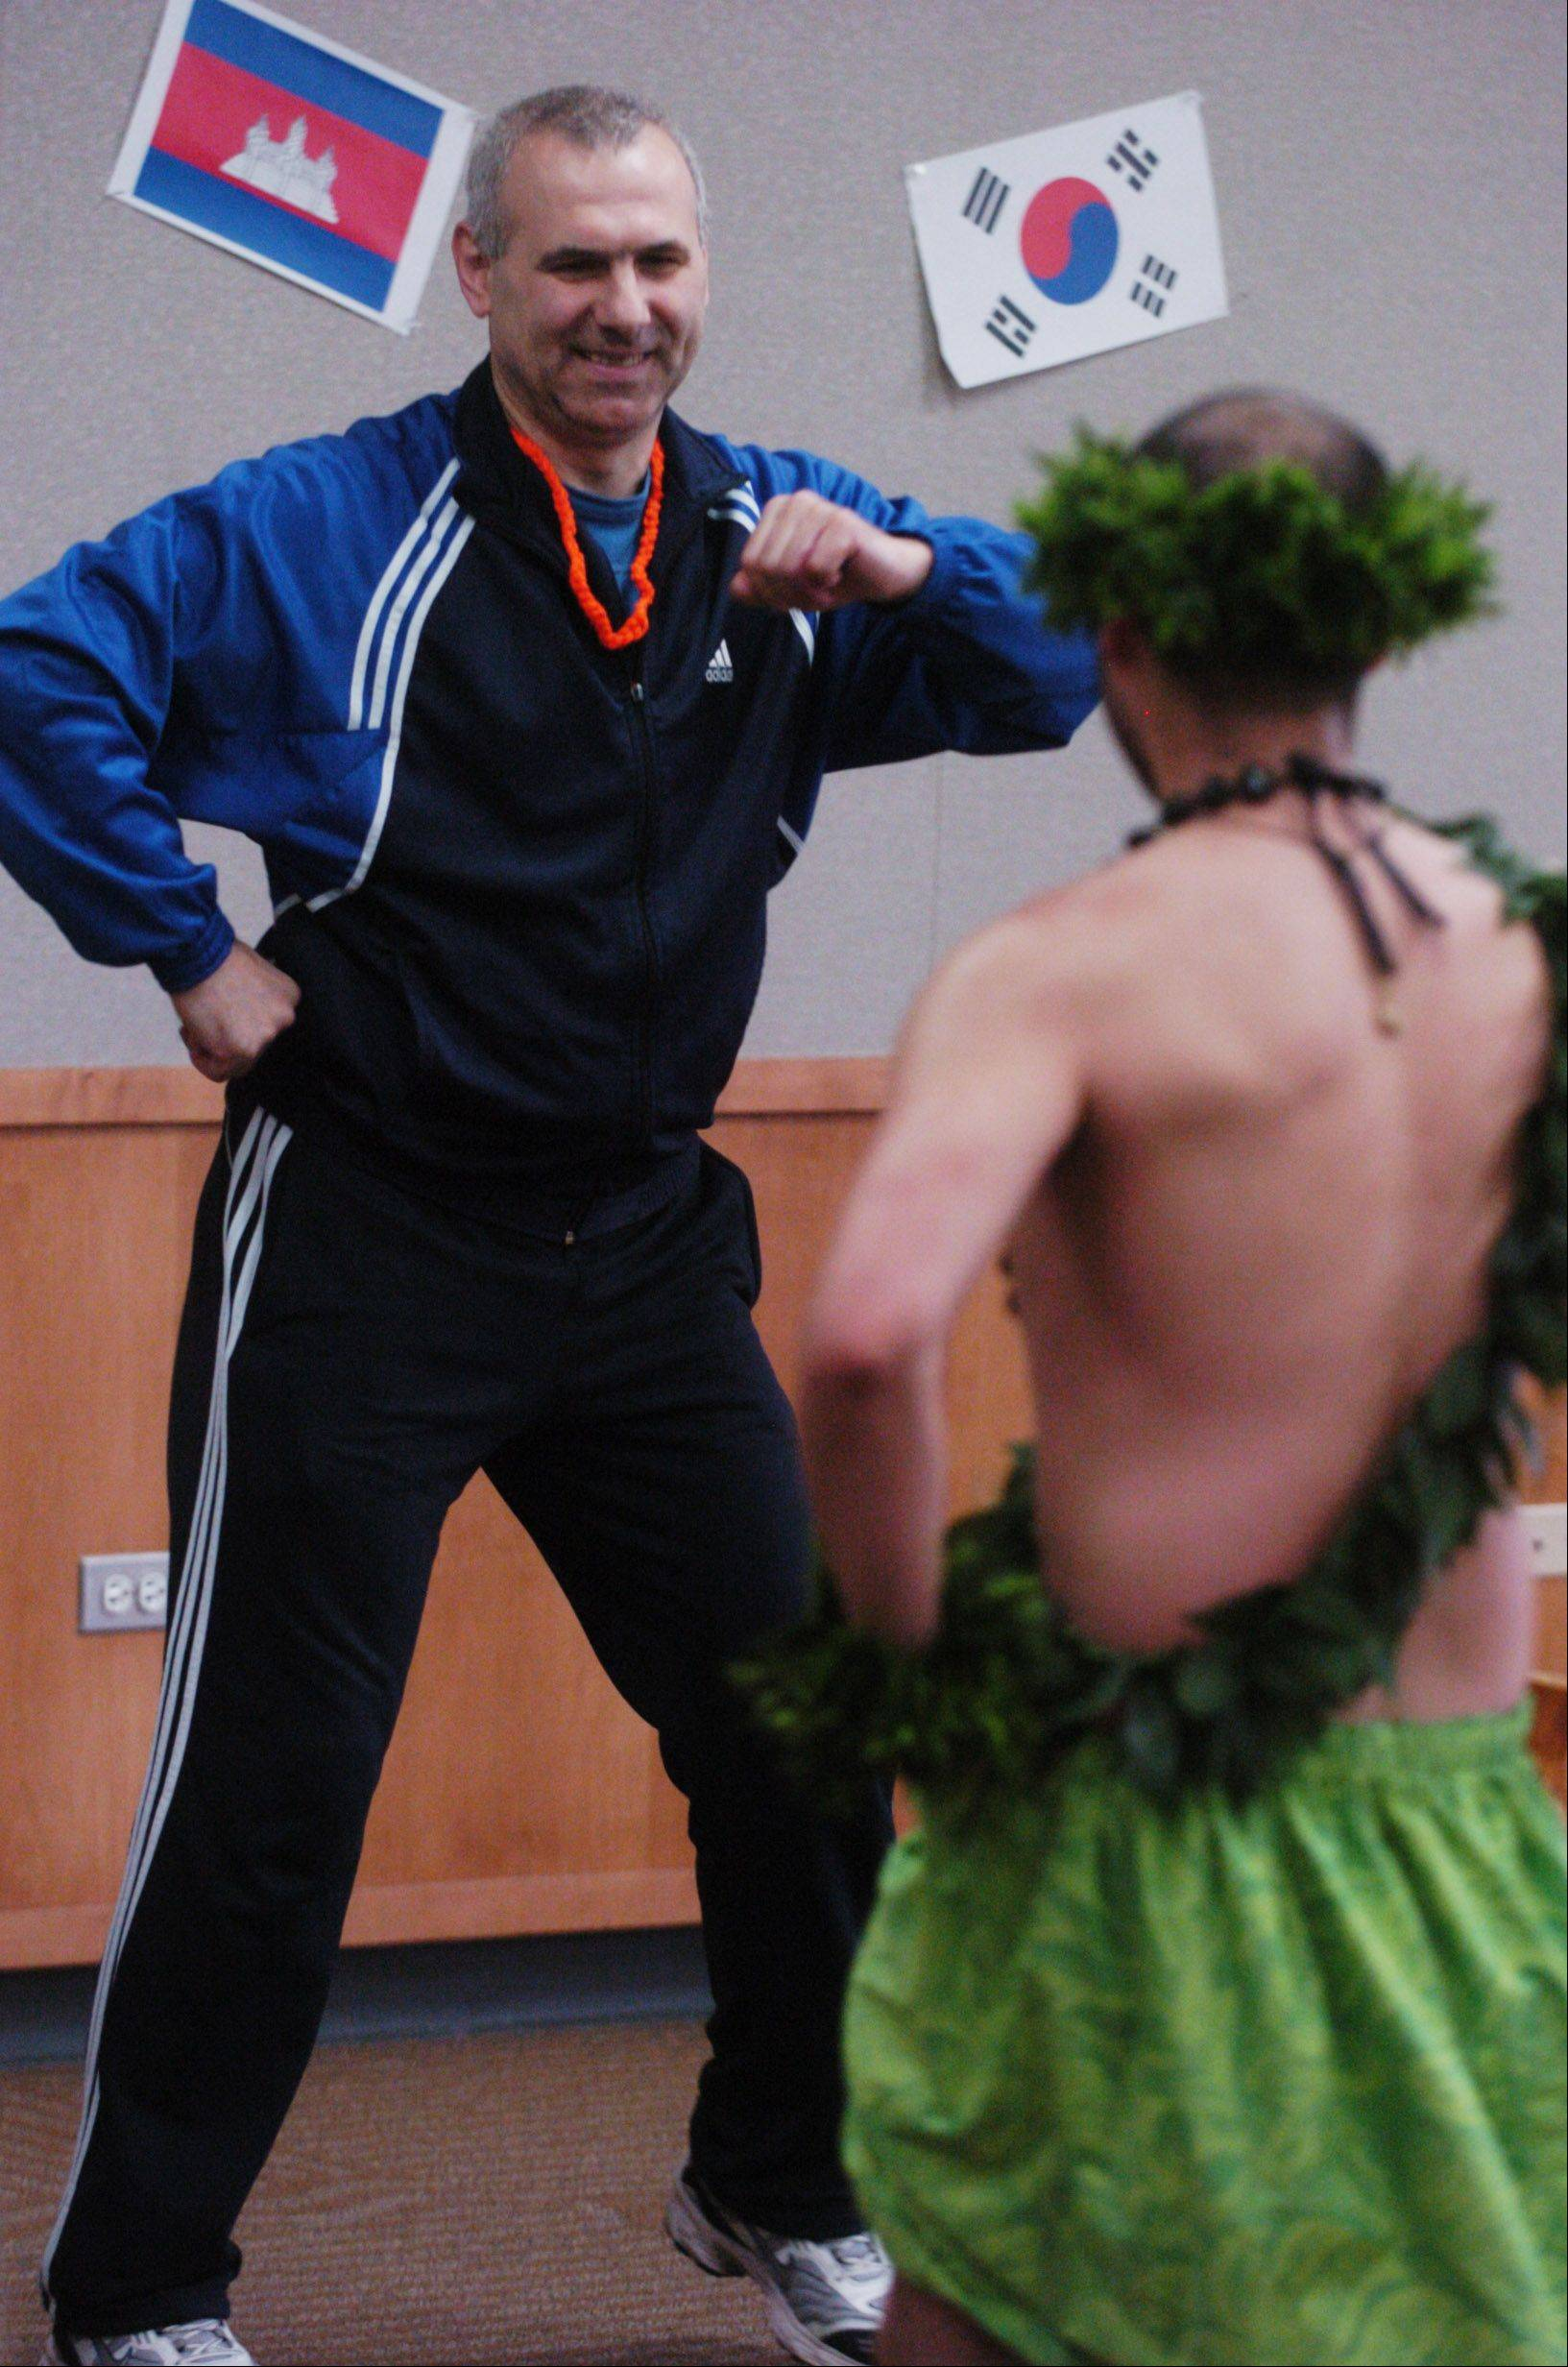 Stoyan Kovatchev of Lake Zurich learns to hula as the Barefoot Hawaiin Dancers perform at the Ela Area Public Library in Lake Zurich Saturday.